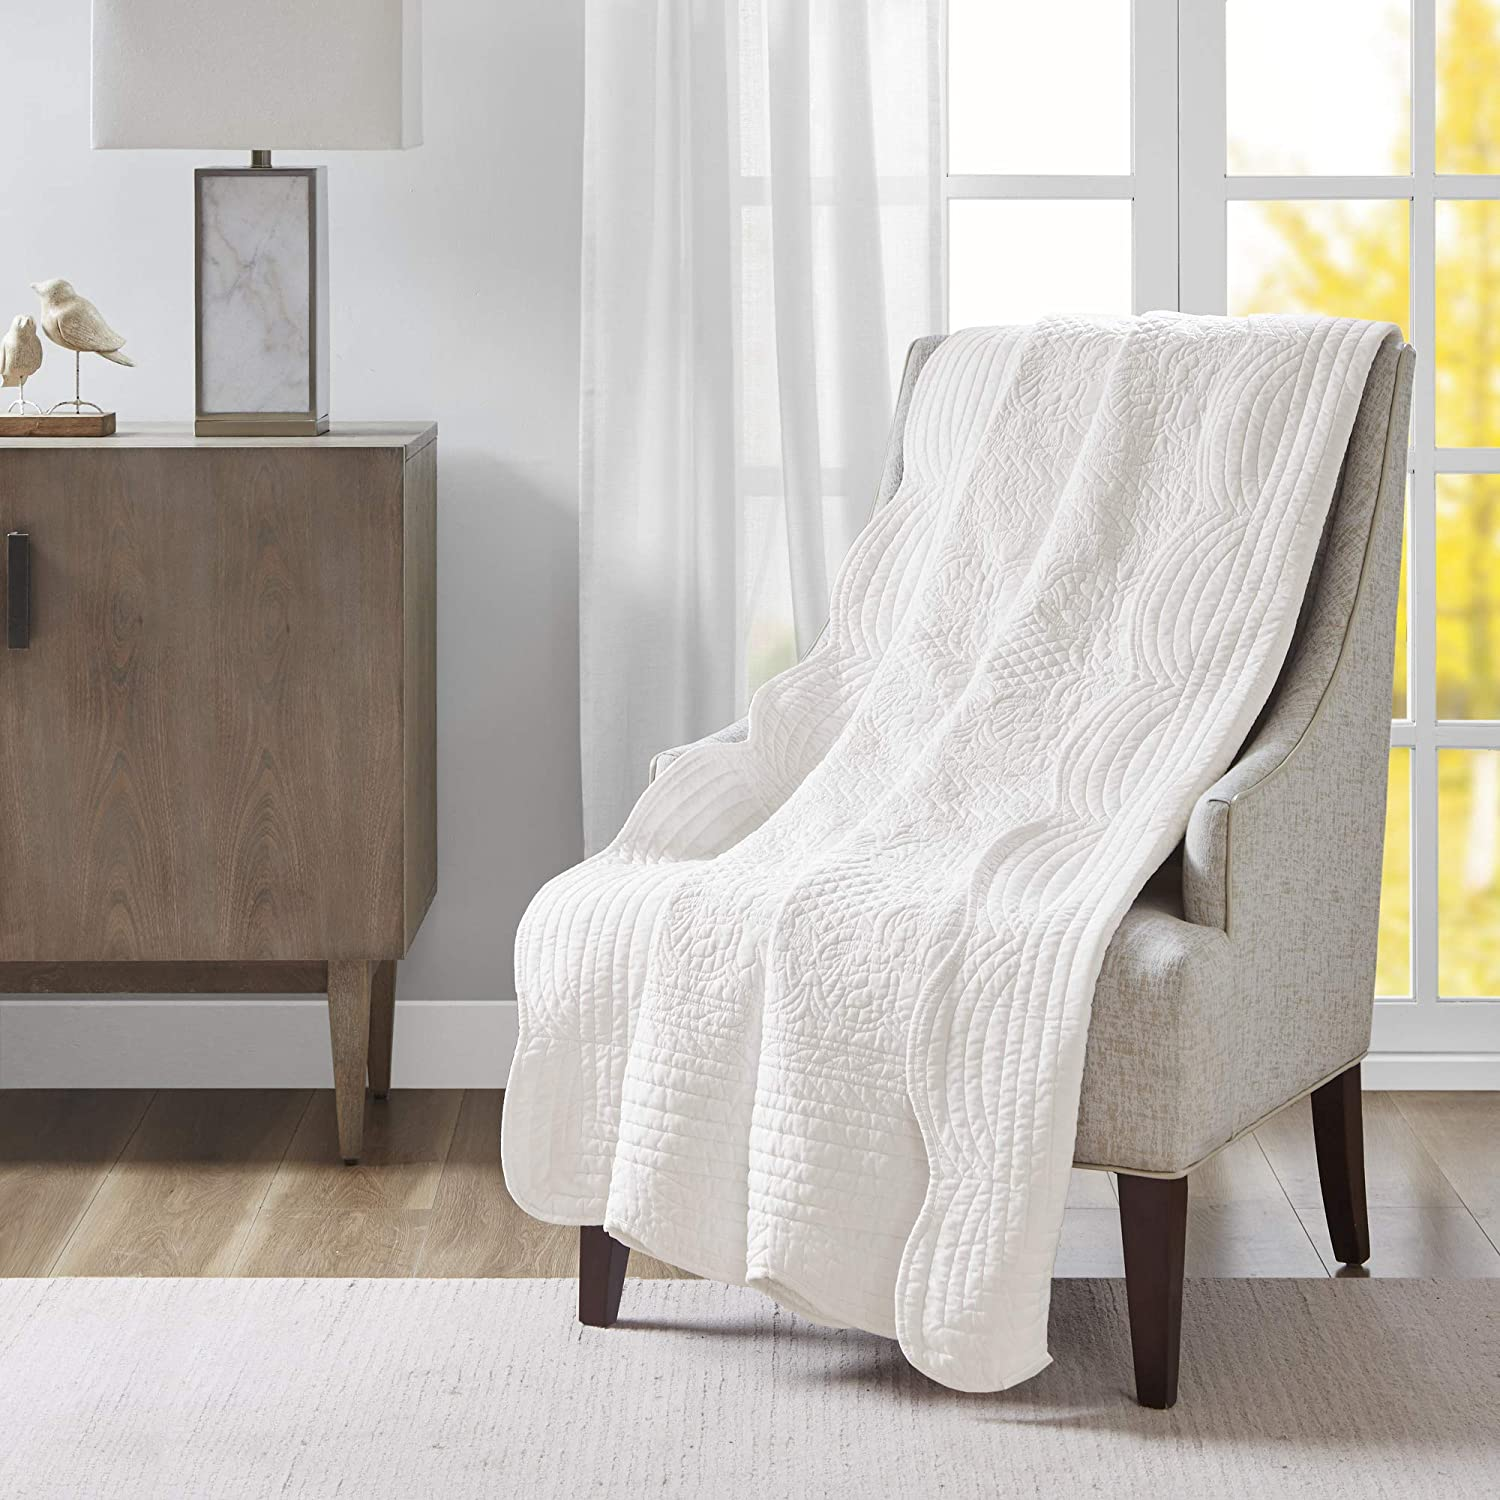 Madison Park Tuscany Luxury Oversized Quilted Throw with Scalloped Edges White 60x72 Quilted Premium Soft Cozy Microfiber For Bed, Couch or Sofa